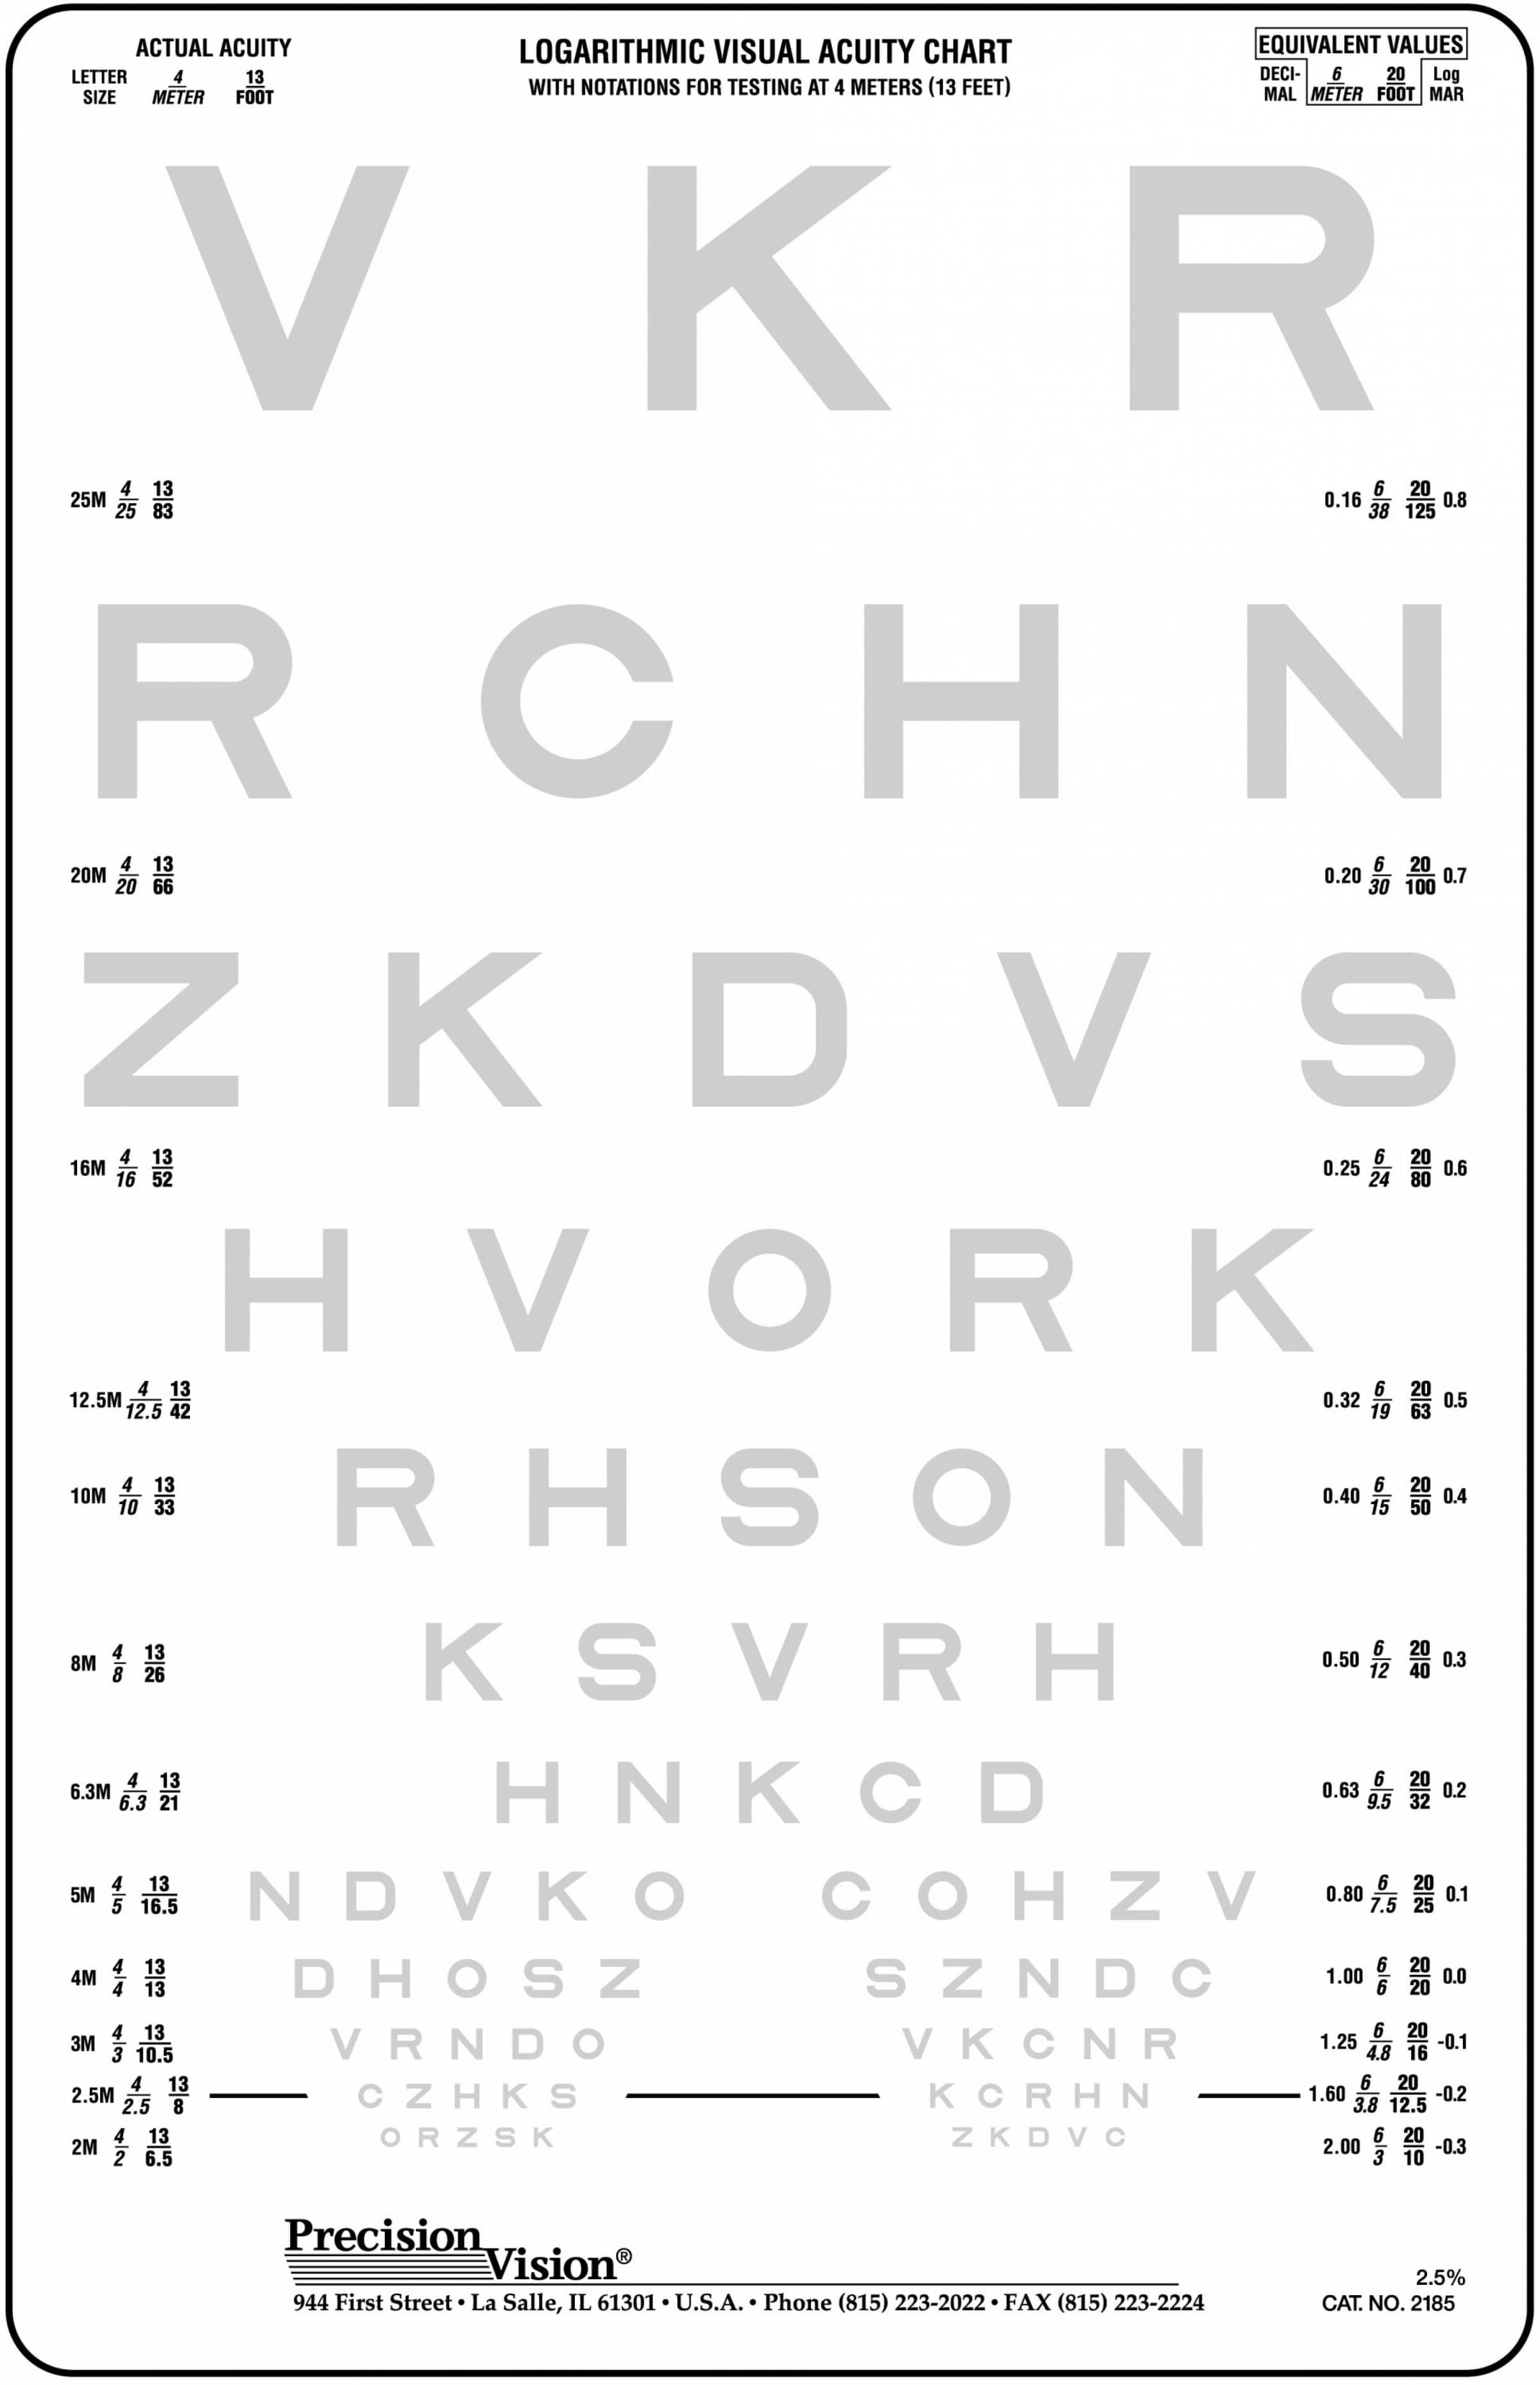 Low contrast sloan translucent eye chart 25 precision vision low contrast sloan translucent eye chart nvjuhfo Choice Image